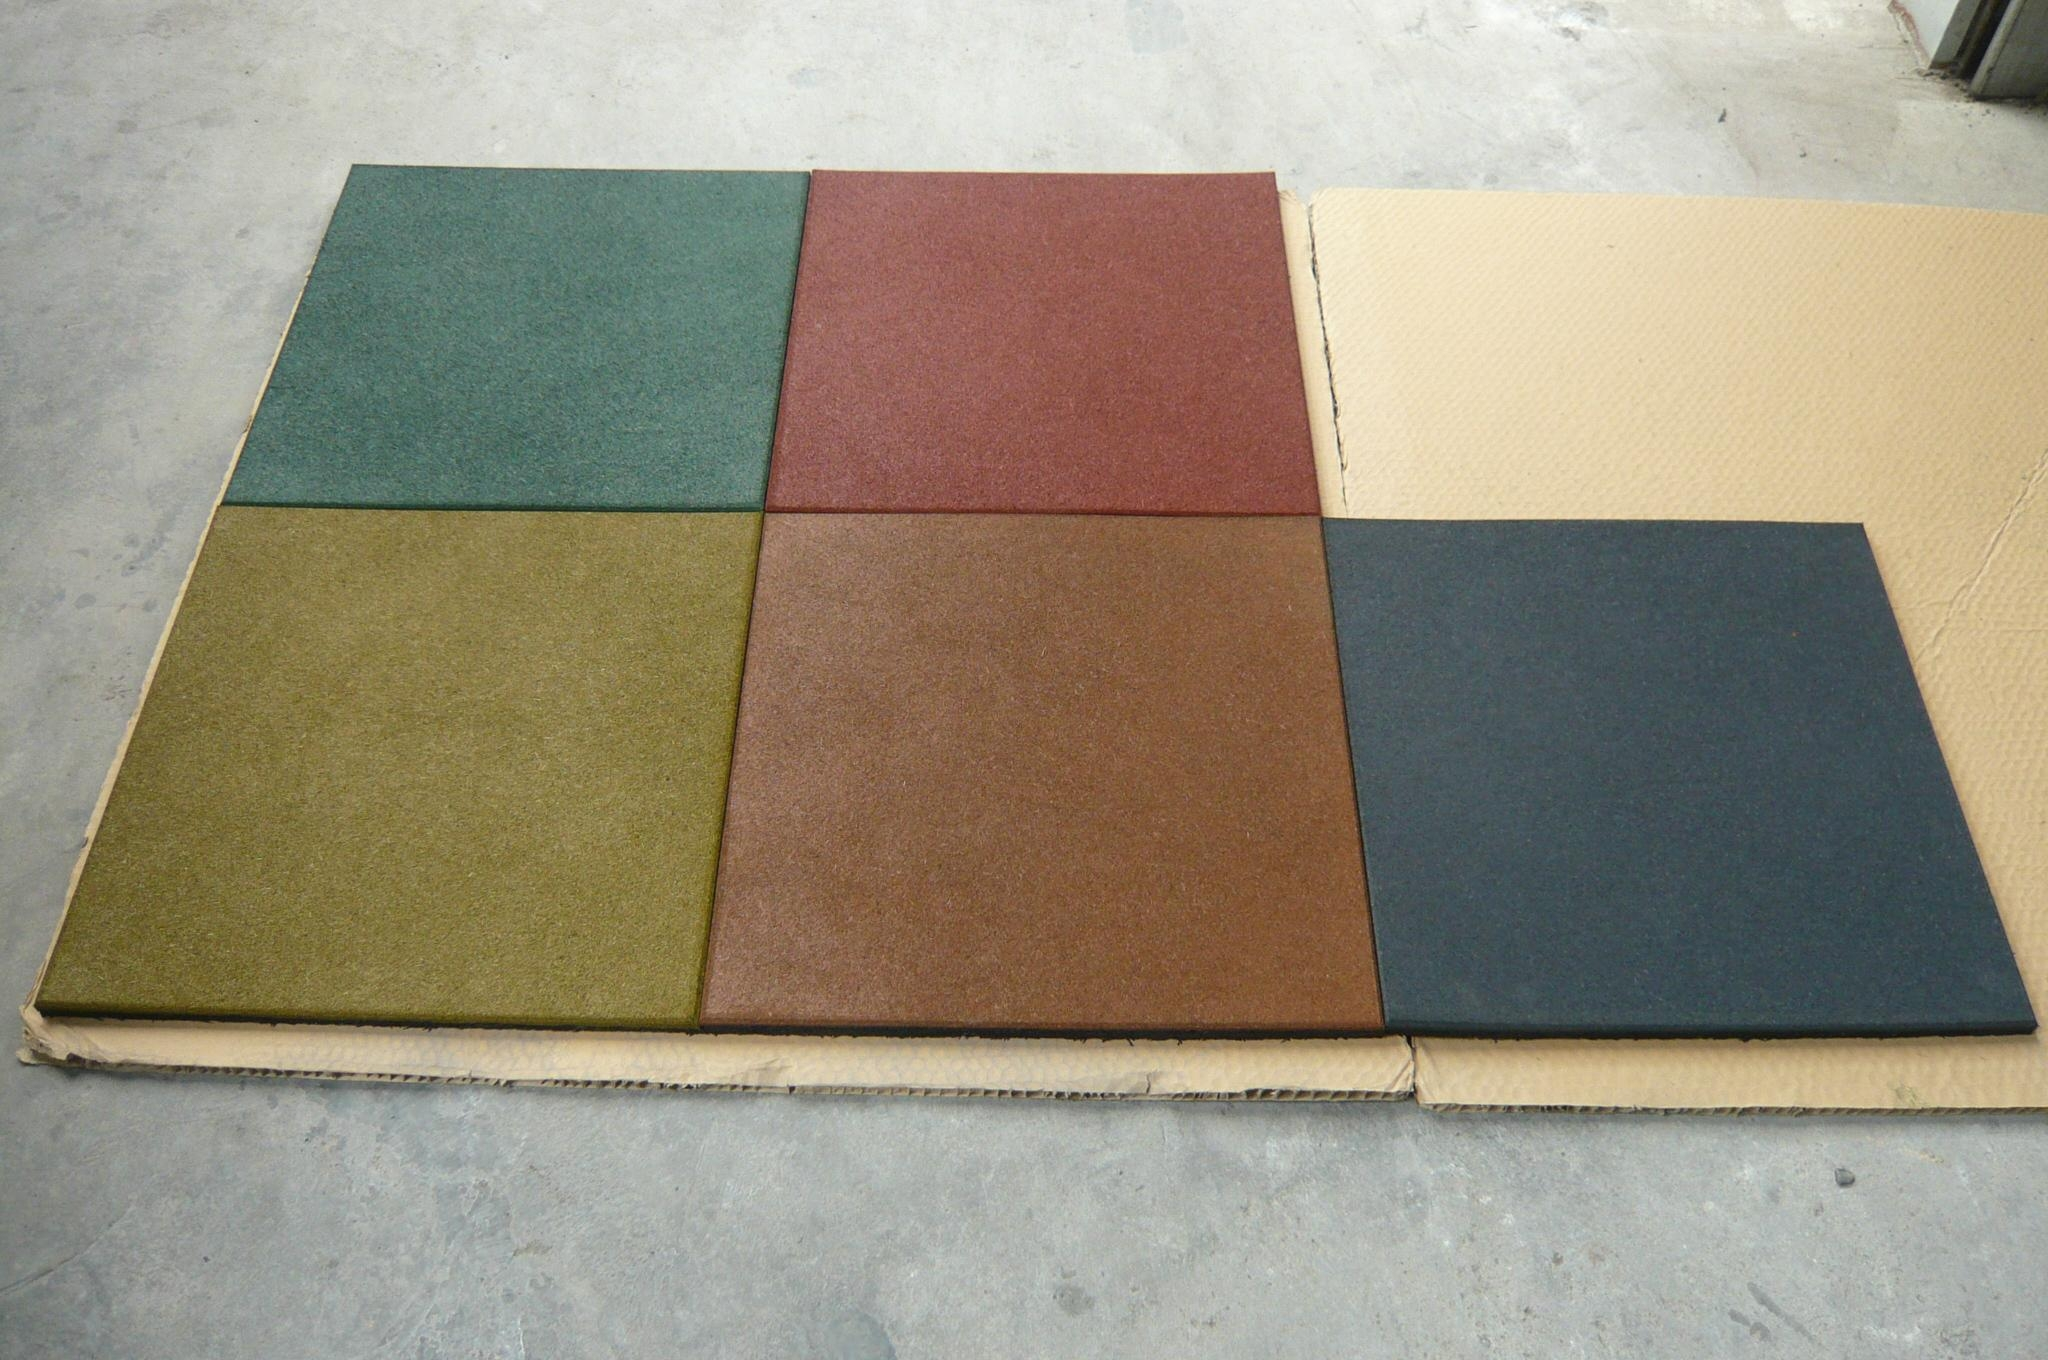 sbr rubber mats colorful flooring tile - A-DY-5 - Green-Valley ...